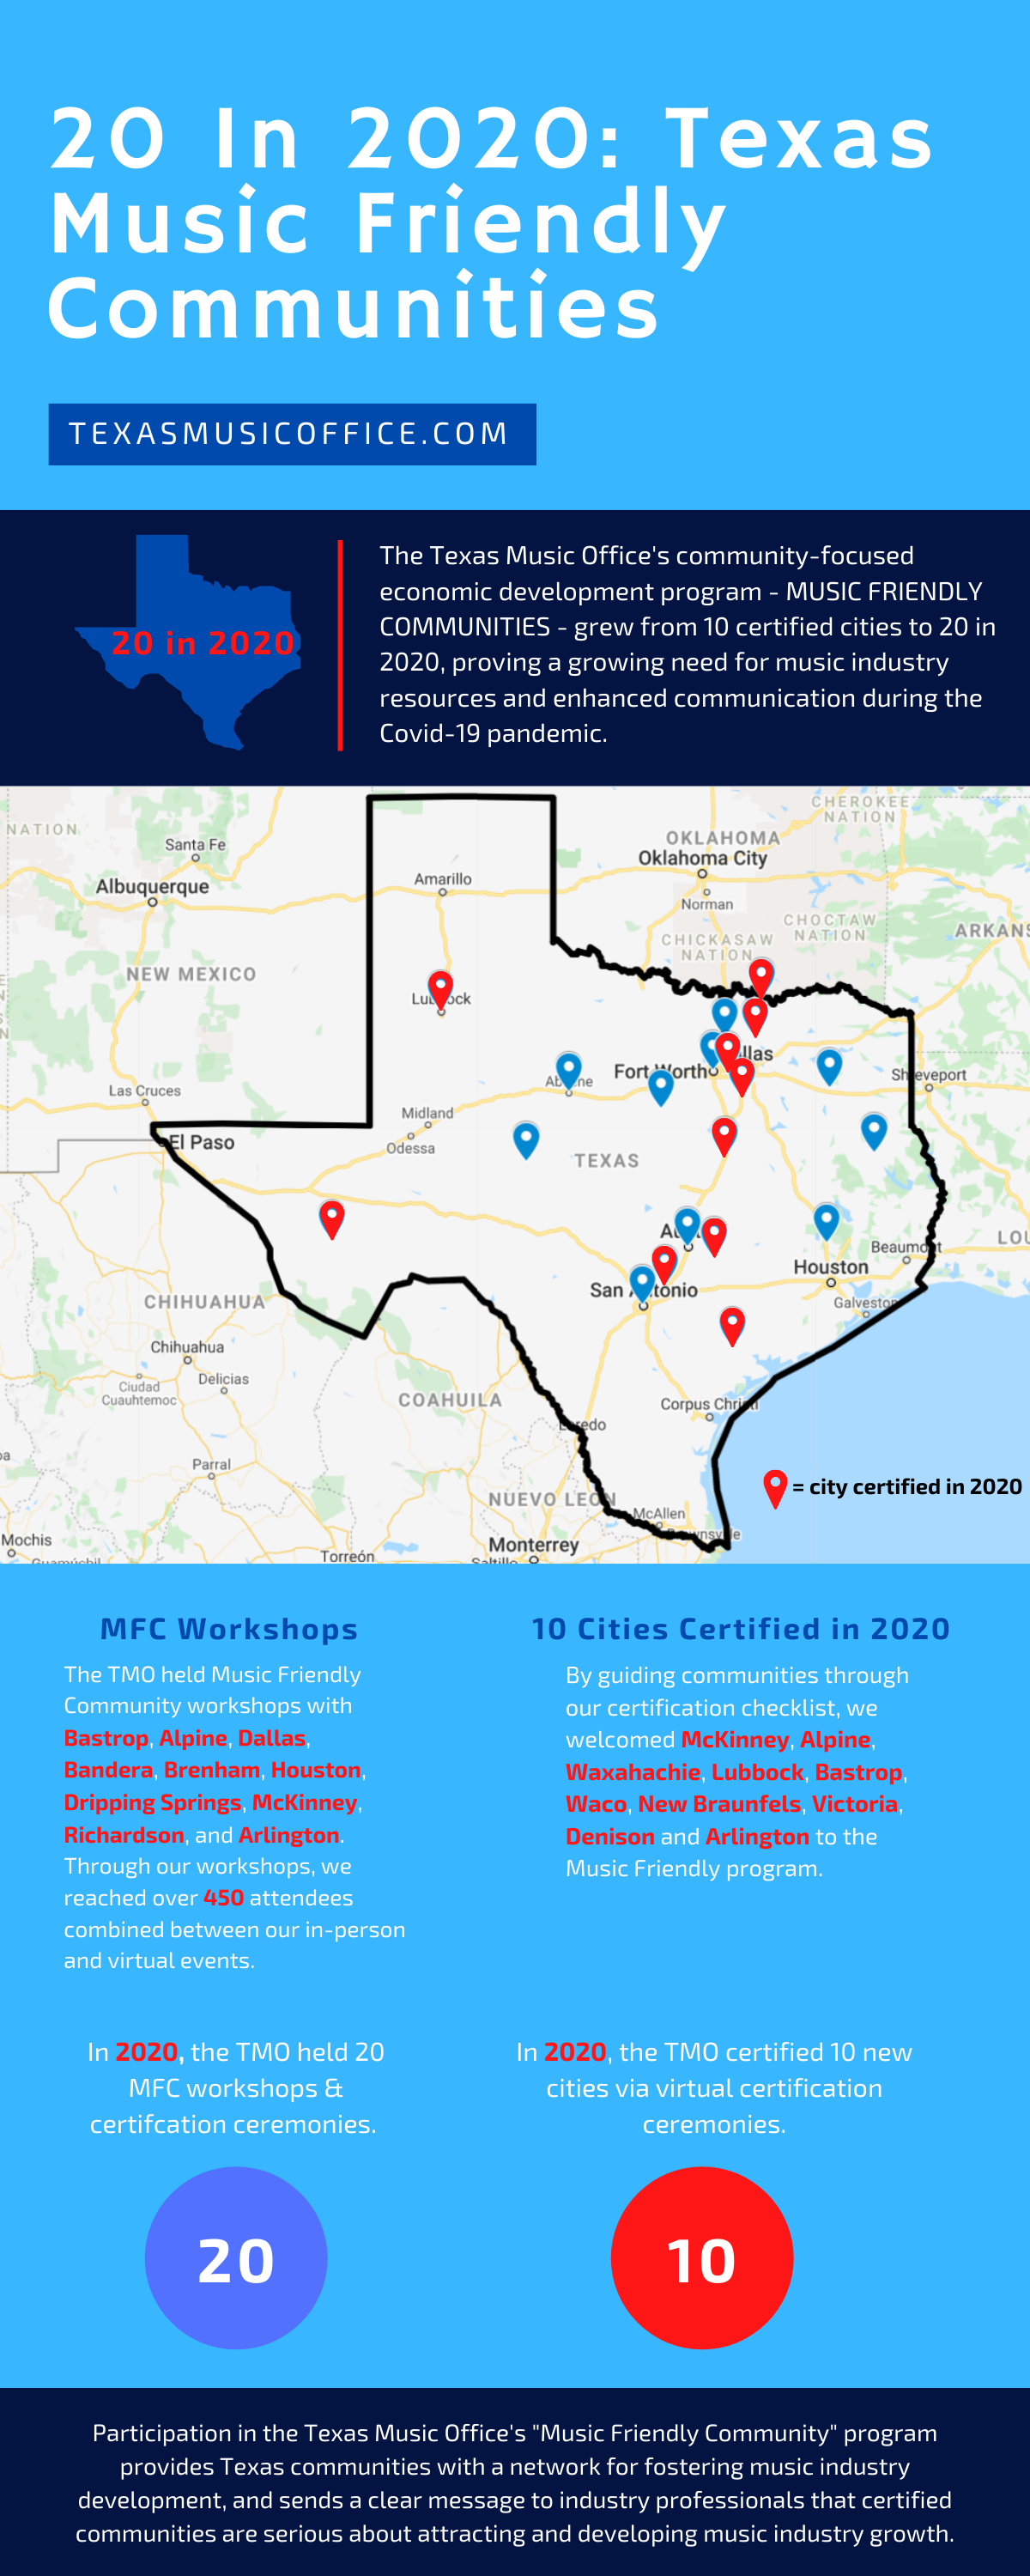 20 in 2020 TX Music Friendly Communities infographic